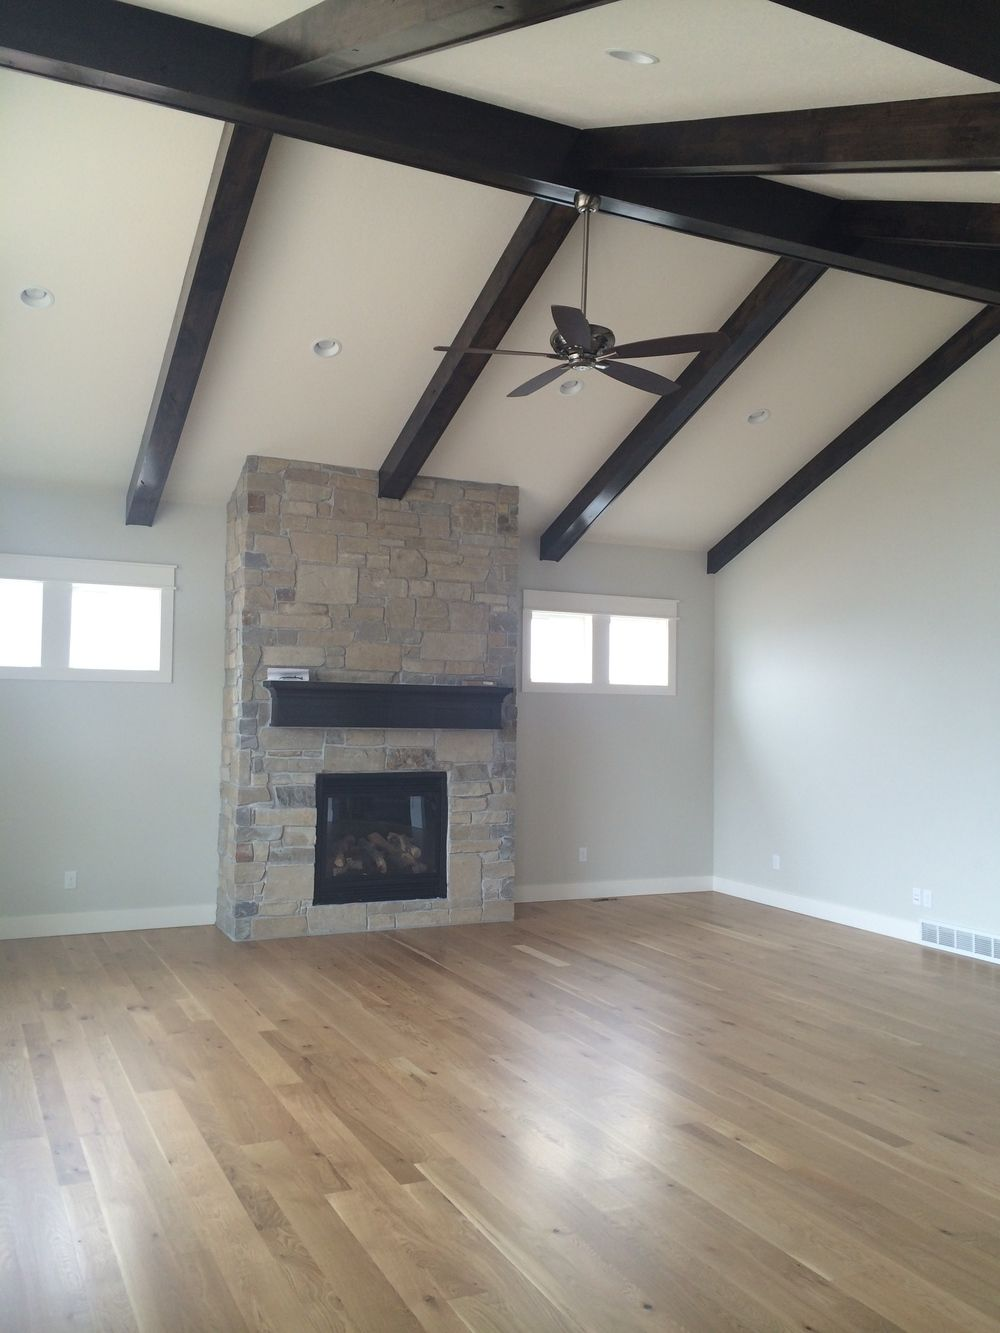 Faux Beams Highlight The Vaulted Ceiling The Beams And Mantel